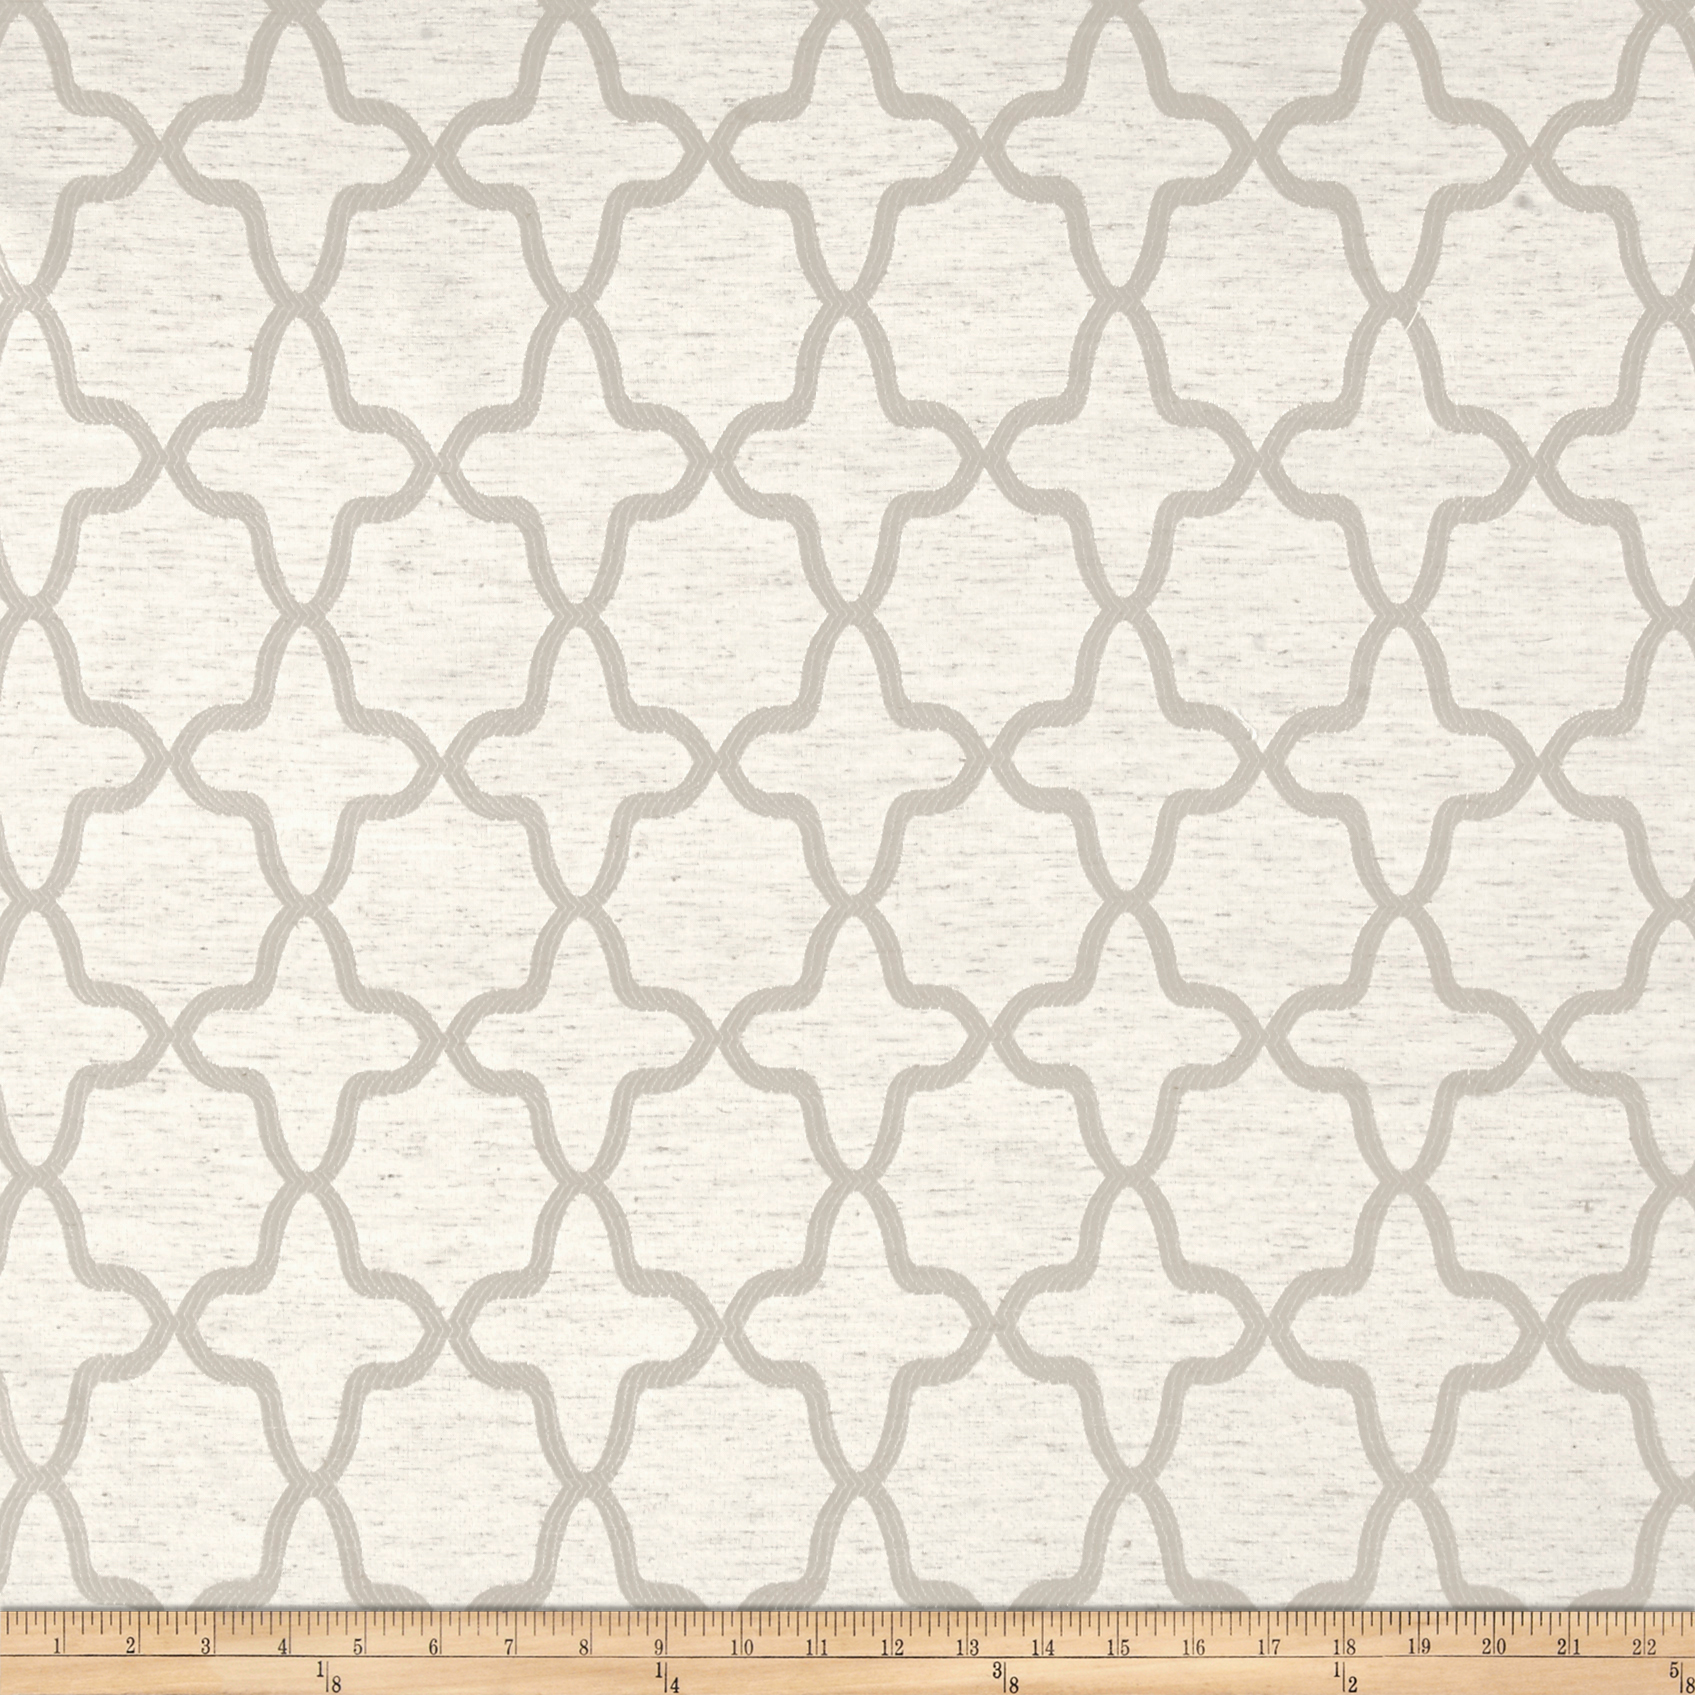 Eroica Manchester Jacquard Sand Fabric by Eroica in USA